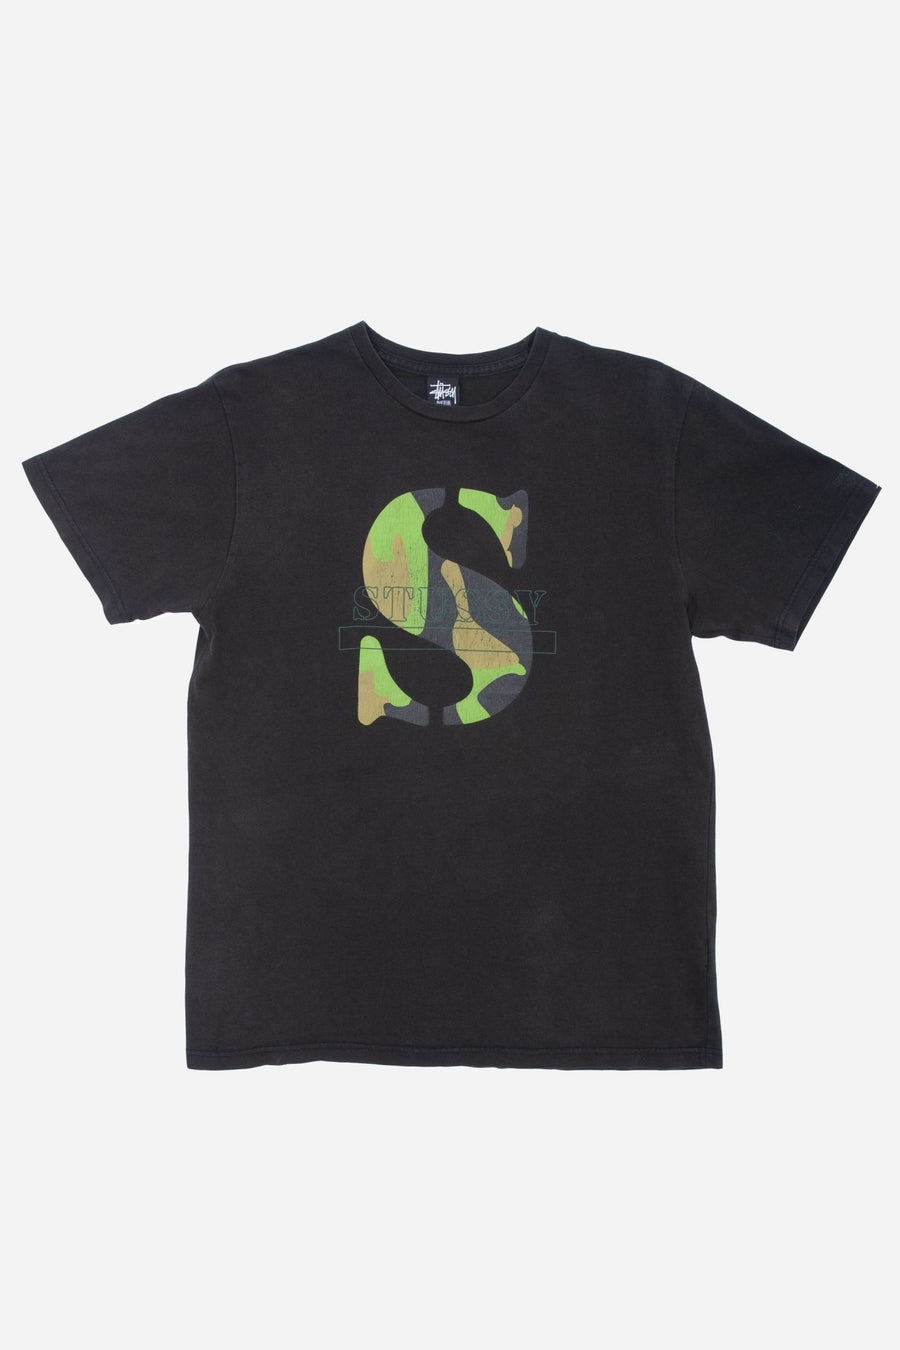 T-shirt Stüssy Camo Signature - WASTED PARIS